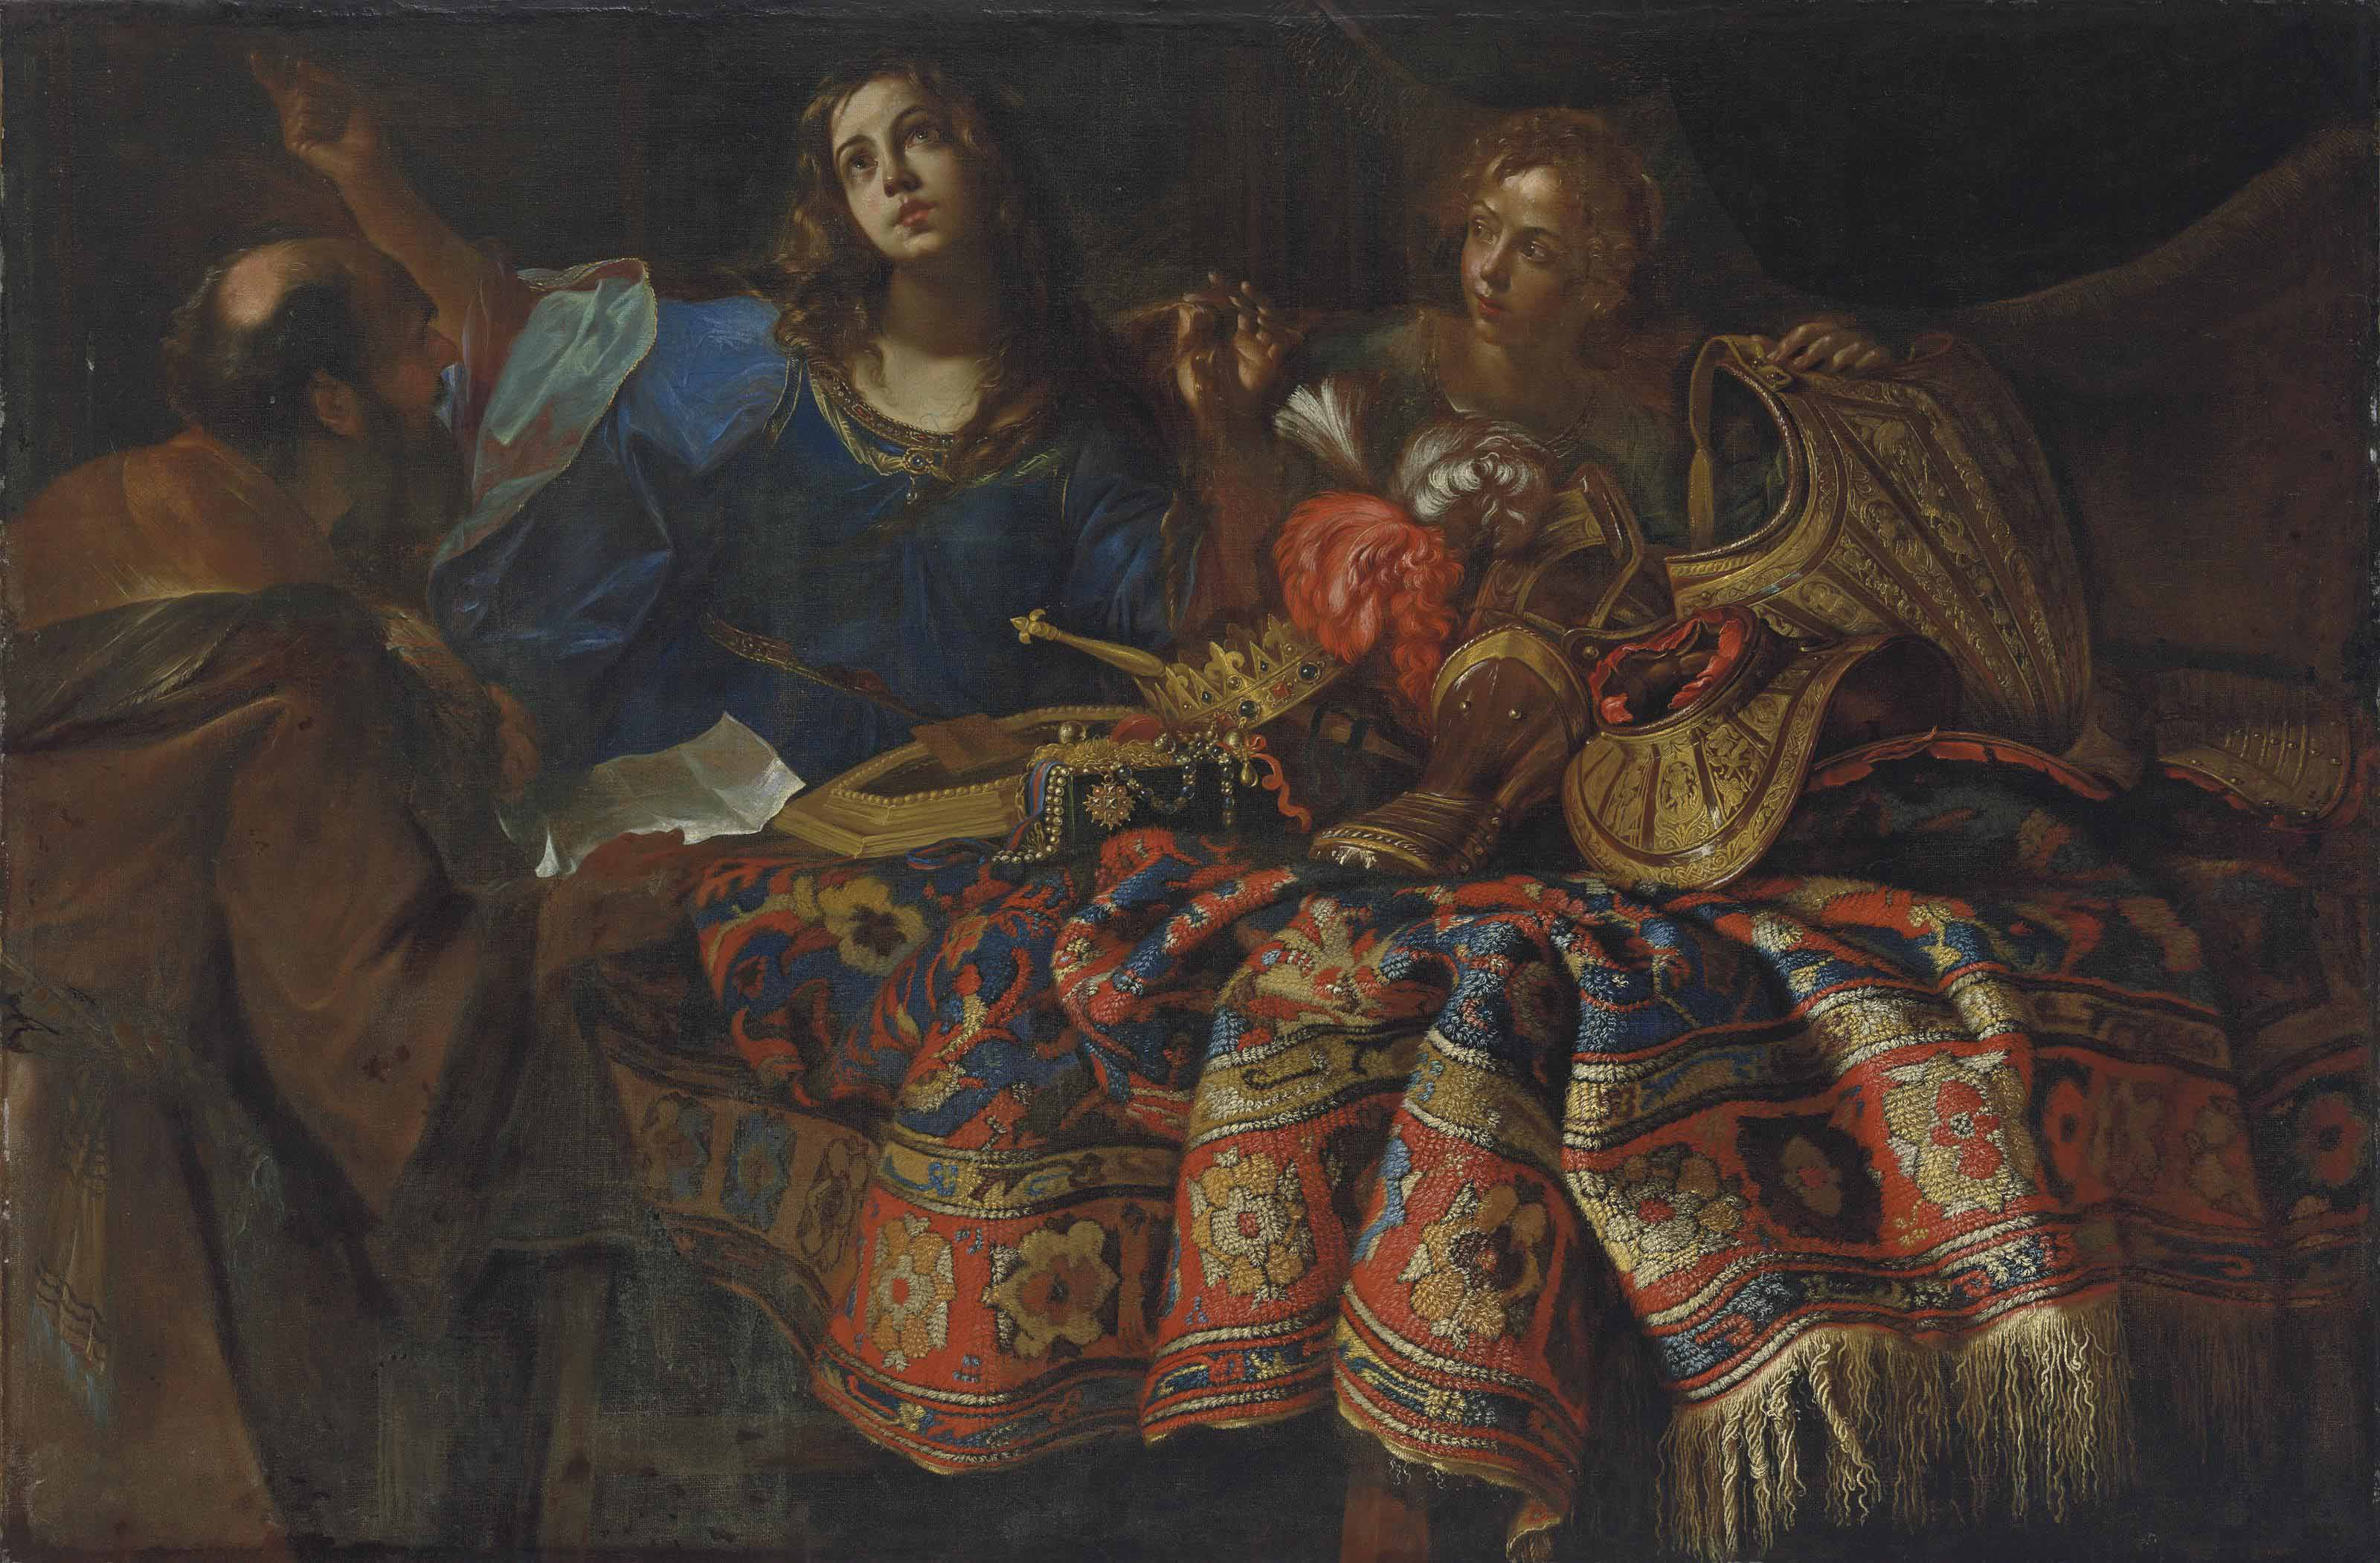 An allegory of the riches